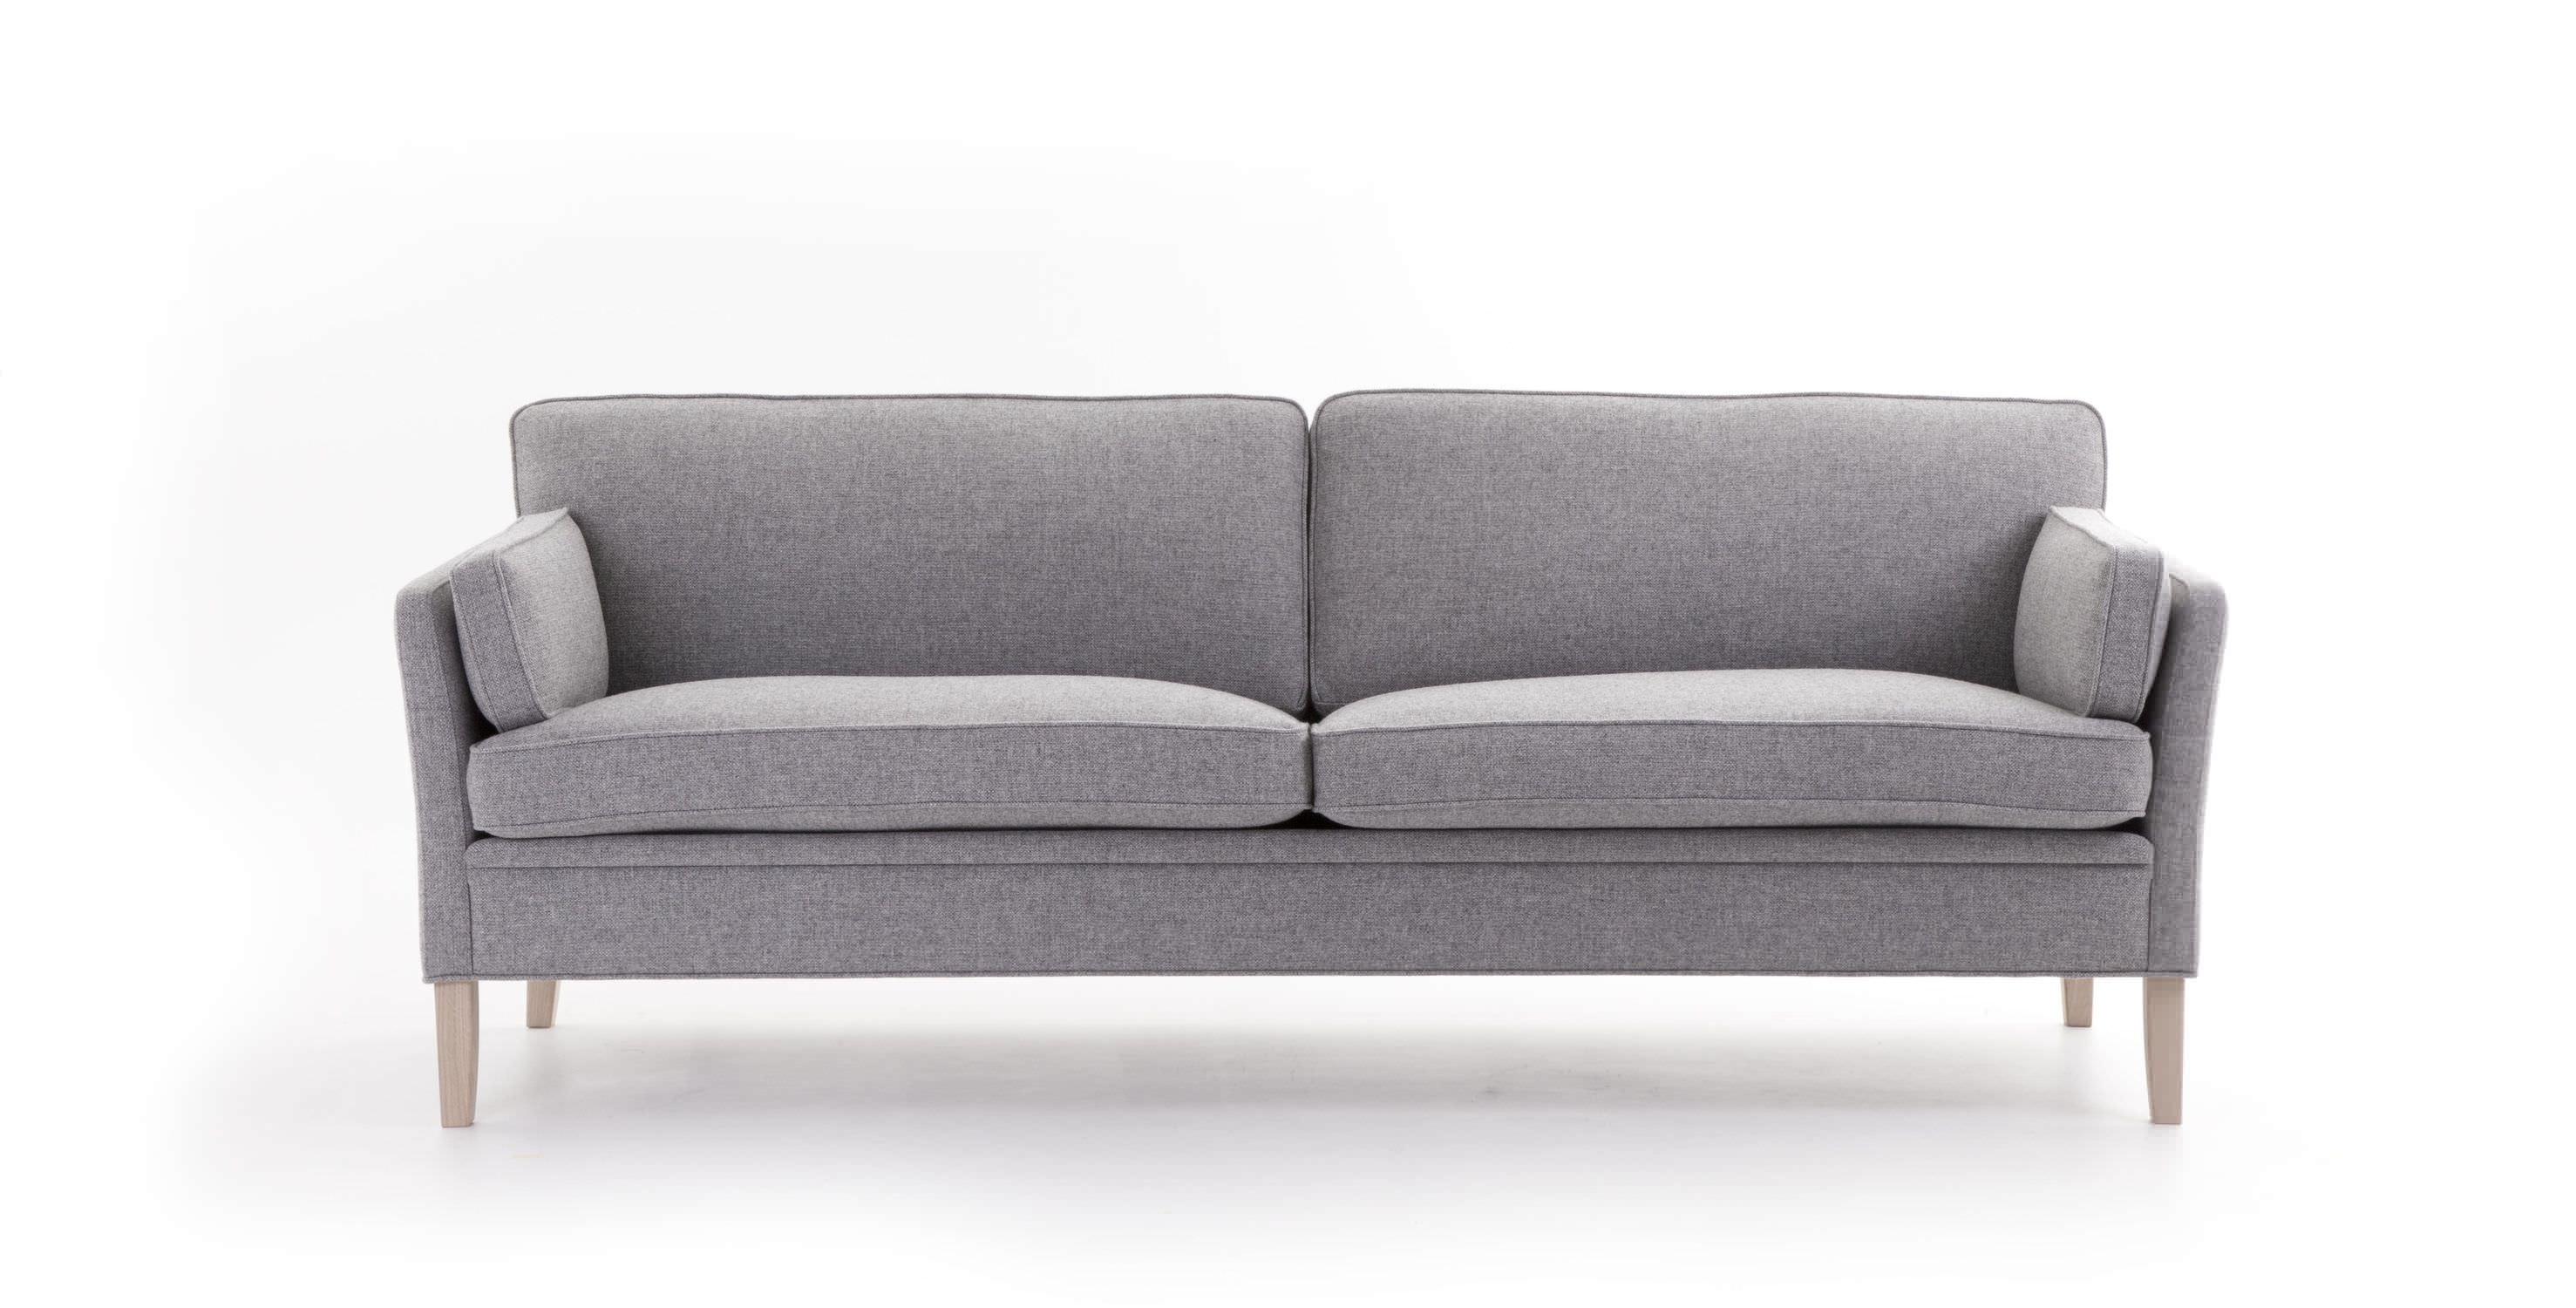 Removable Cover Sofa – Home And Textiles With Sofas With Removable Cover (View 4 of 10)